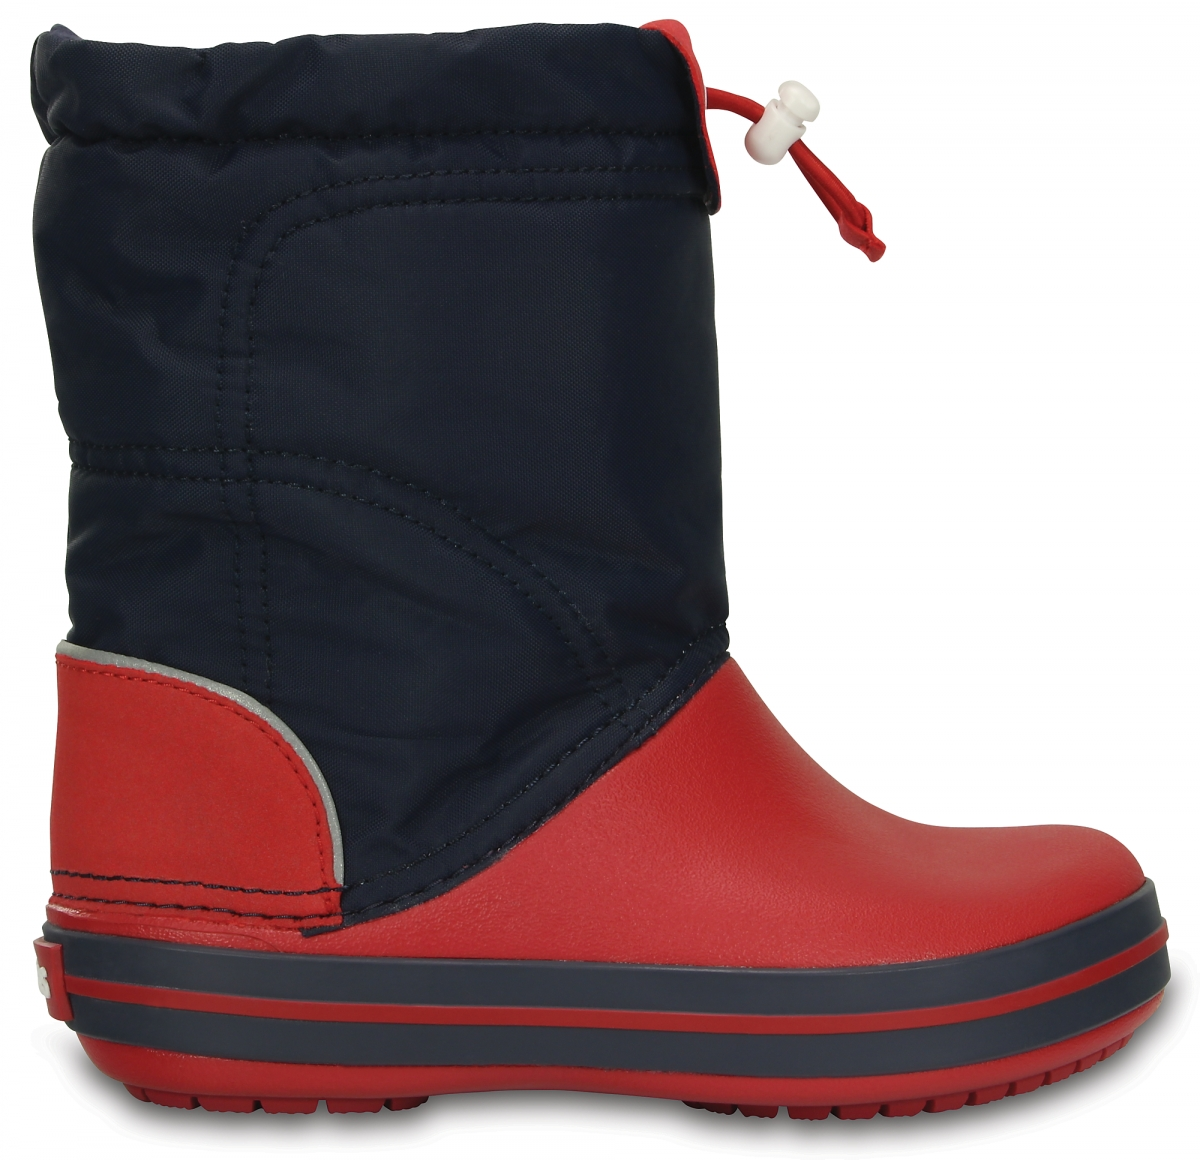 Crocs Crocband LodgePoint Boot Kids - Navy/Red, C13 (30-31)